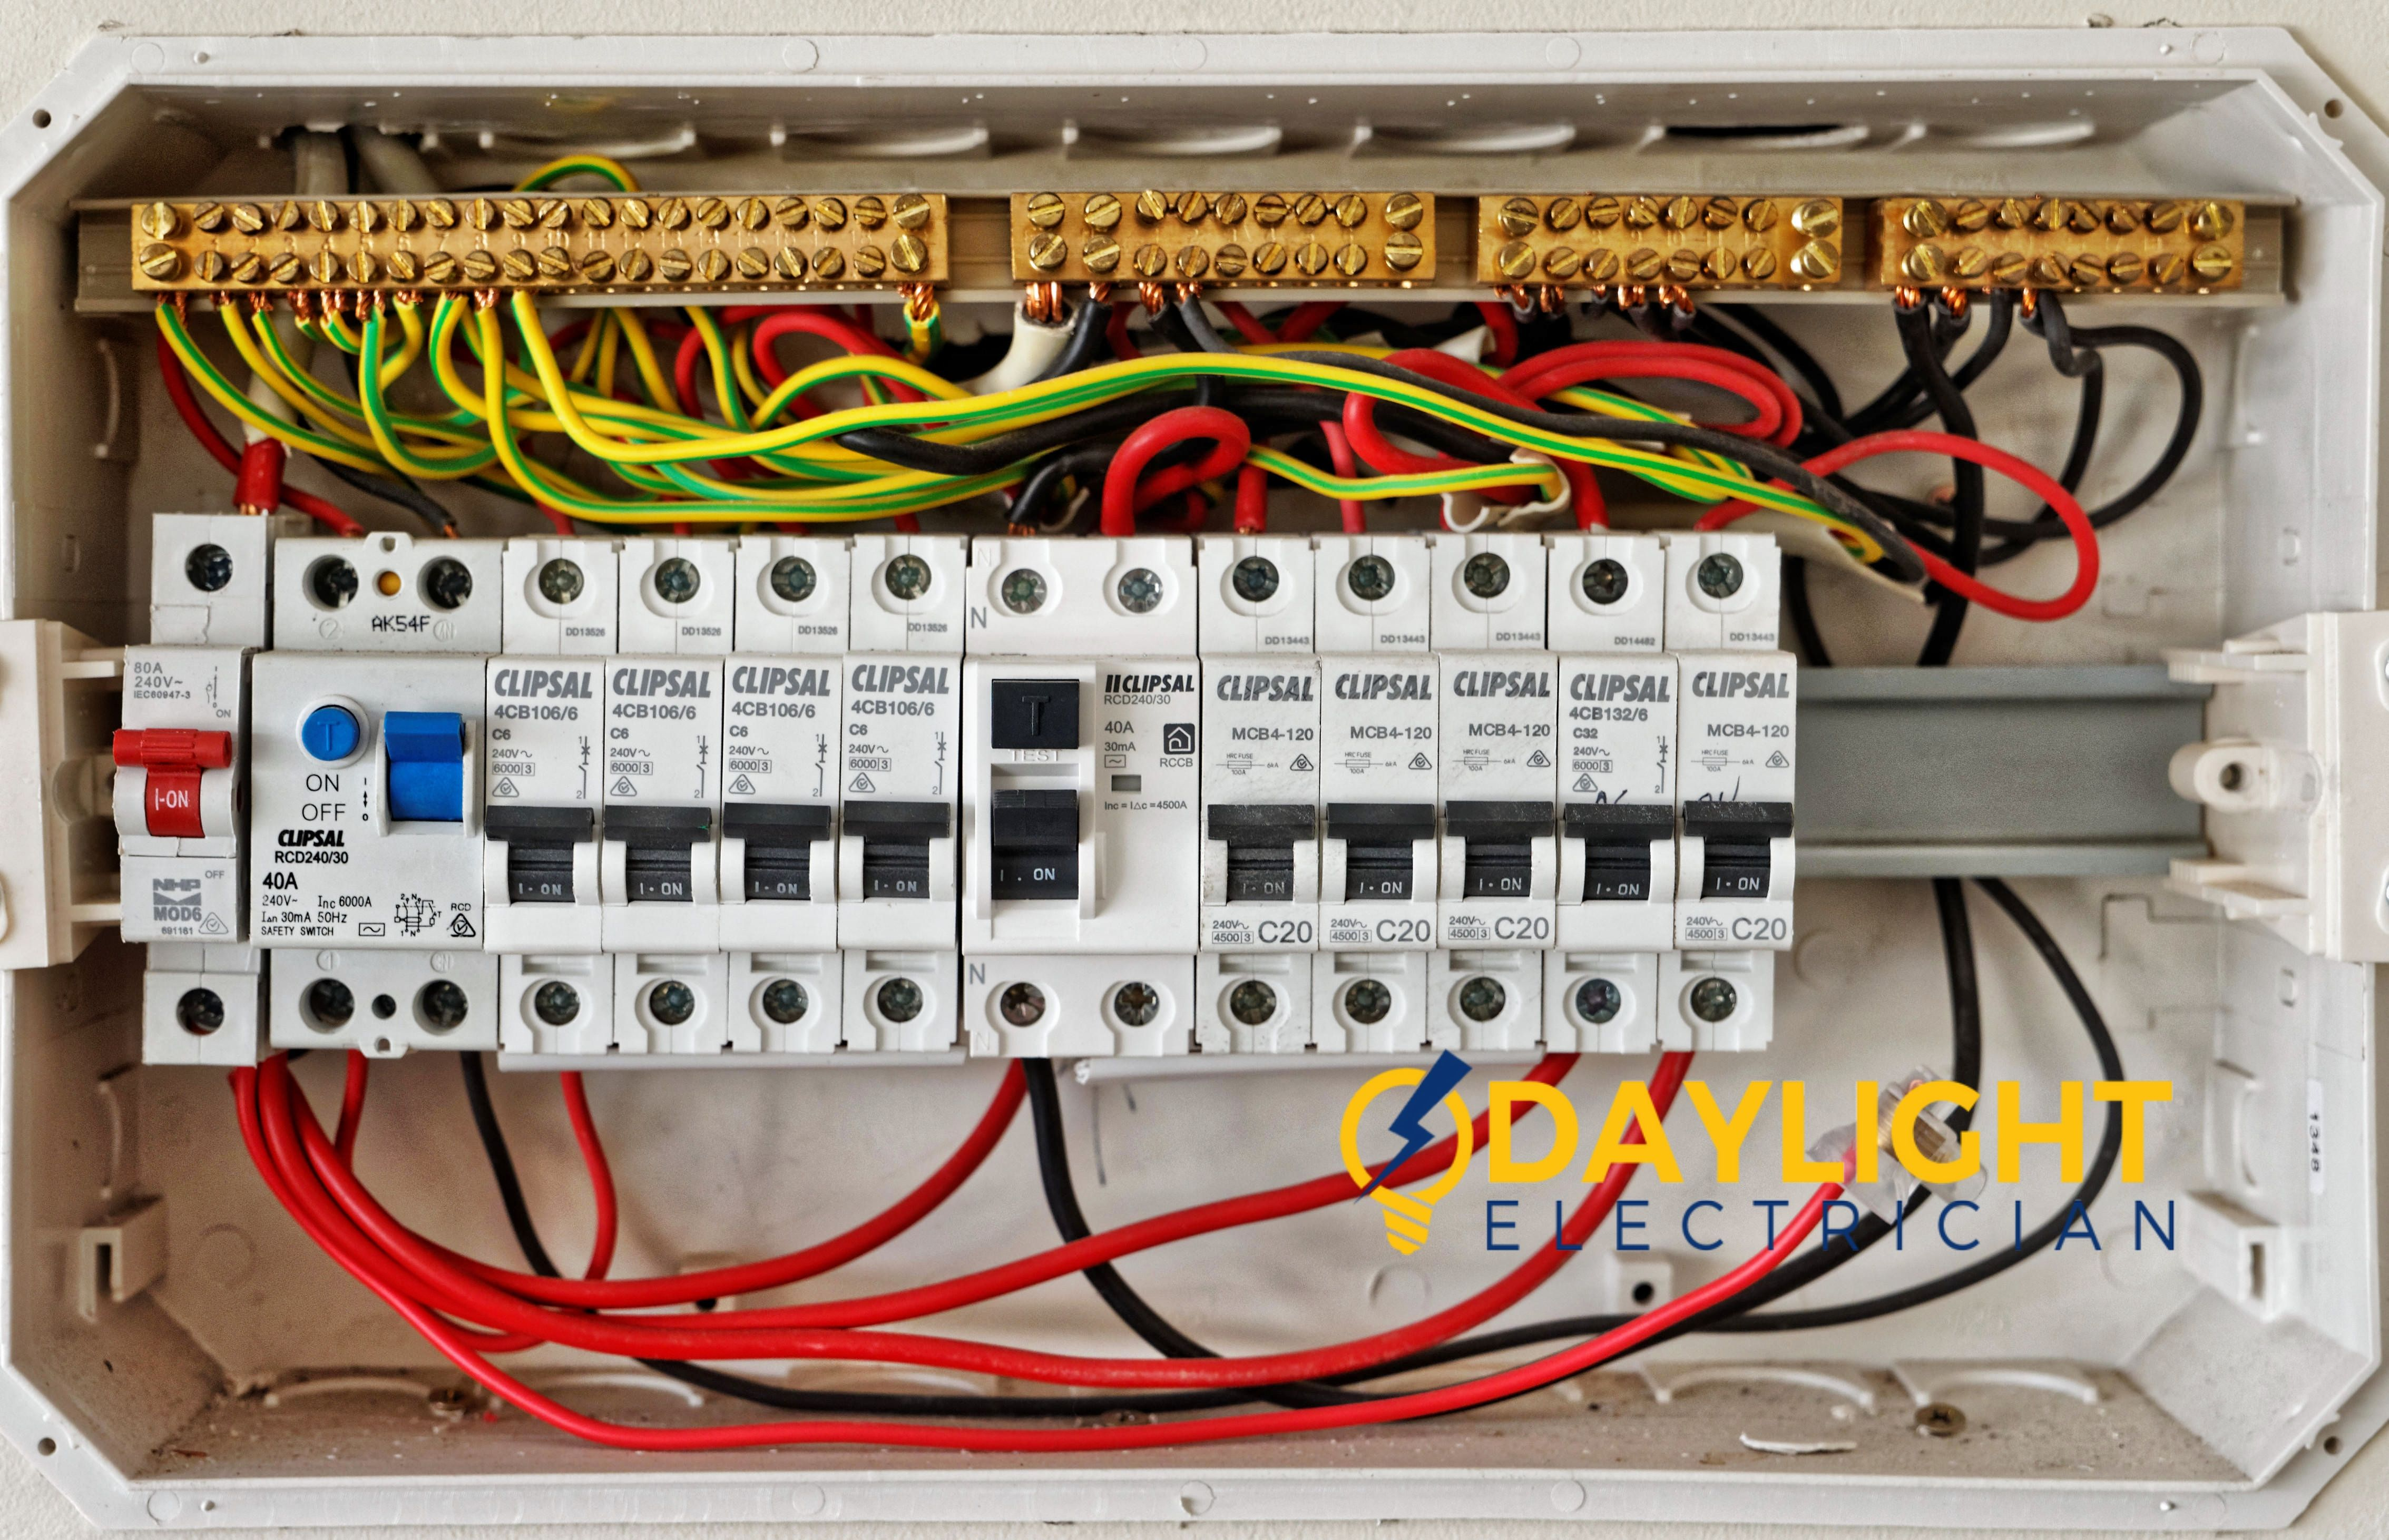 Troubleshooting Common Lighting Issues And How To Repair Them Electrician Singapore Recommended Electrician Services Singapore Electrician Services Repair Electrician